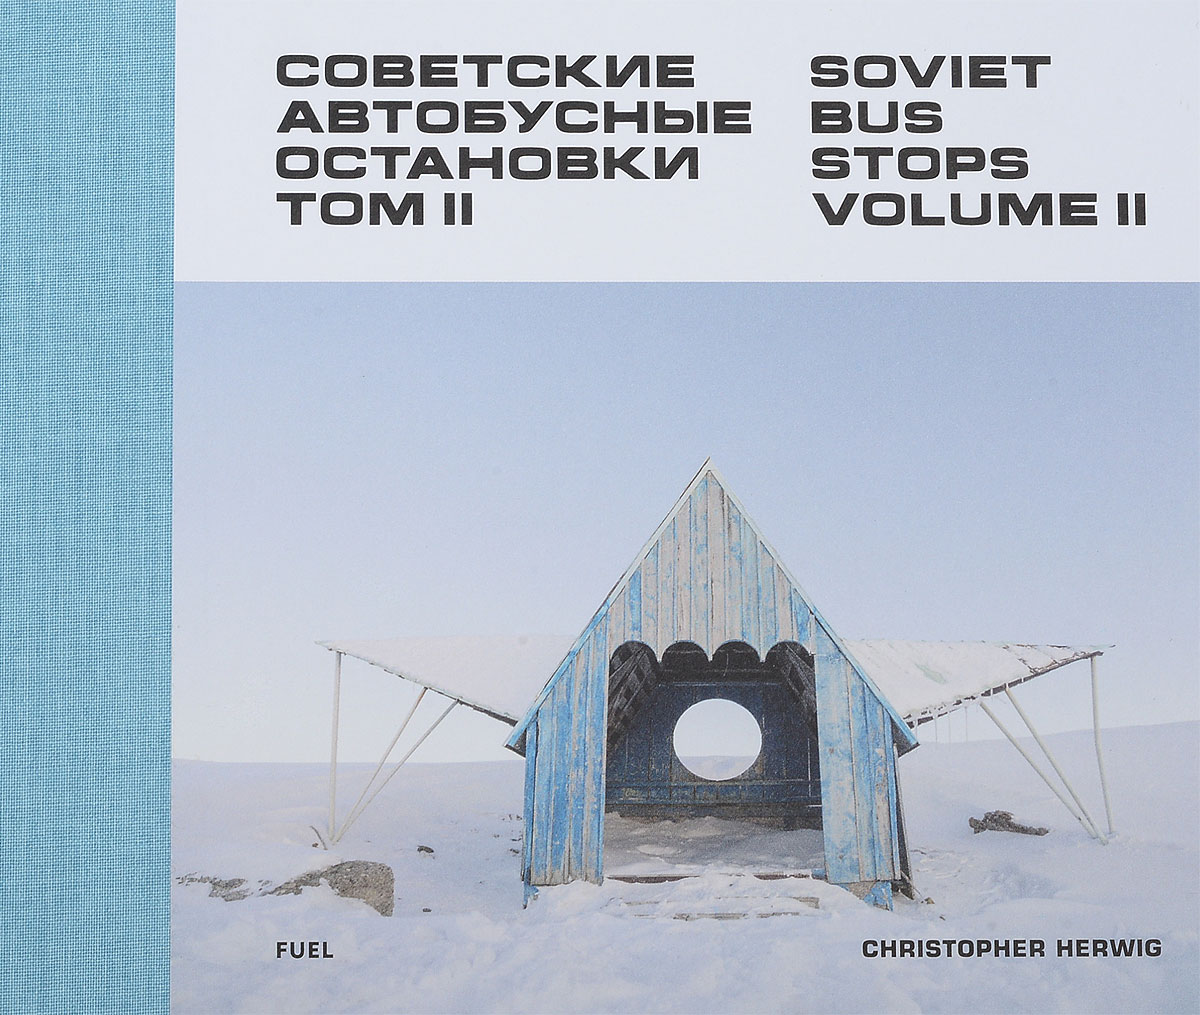 Советские автобусные остановки. Том 2 / Soviet Bus Stops: Volume 2 demystifying learning traps in a new product innovation process